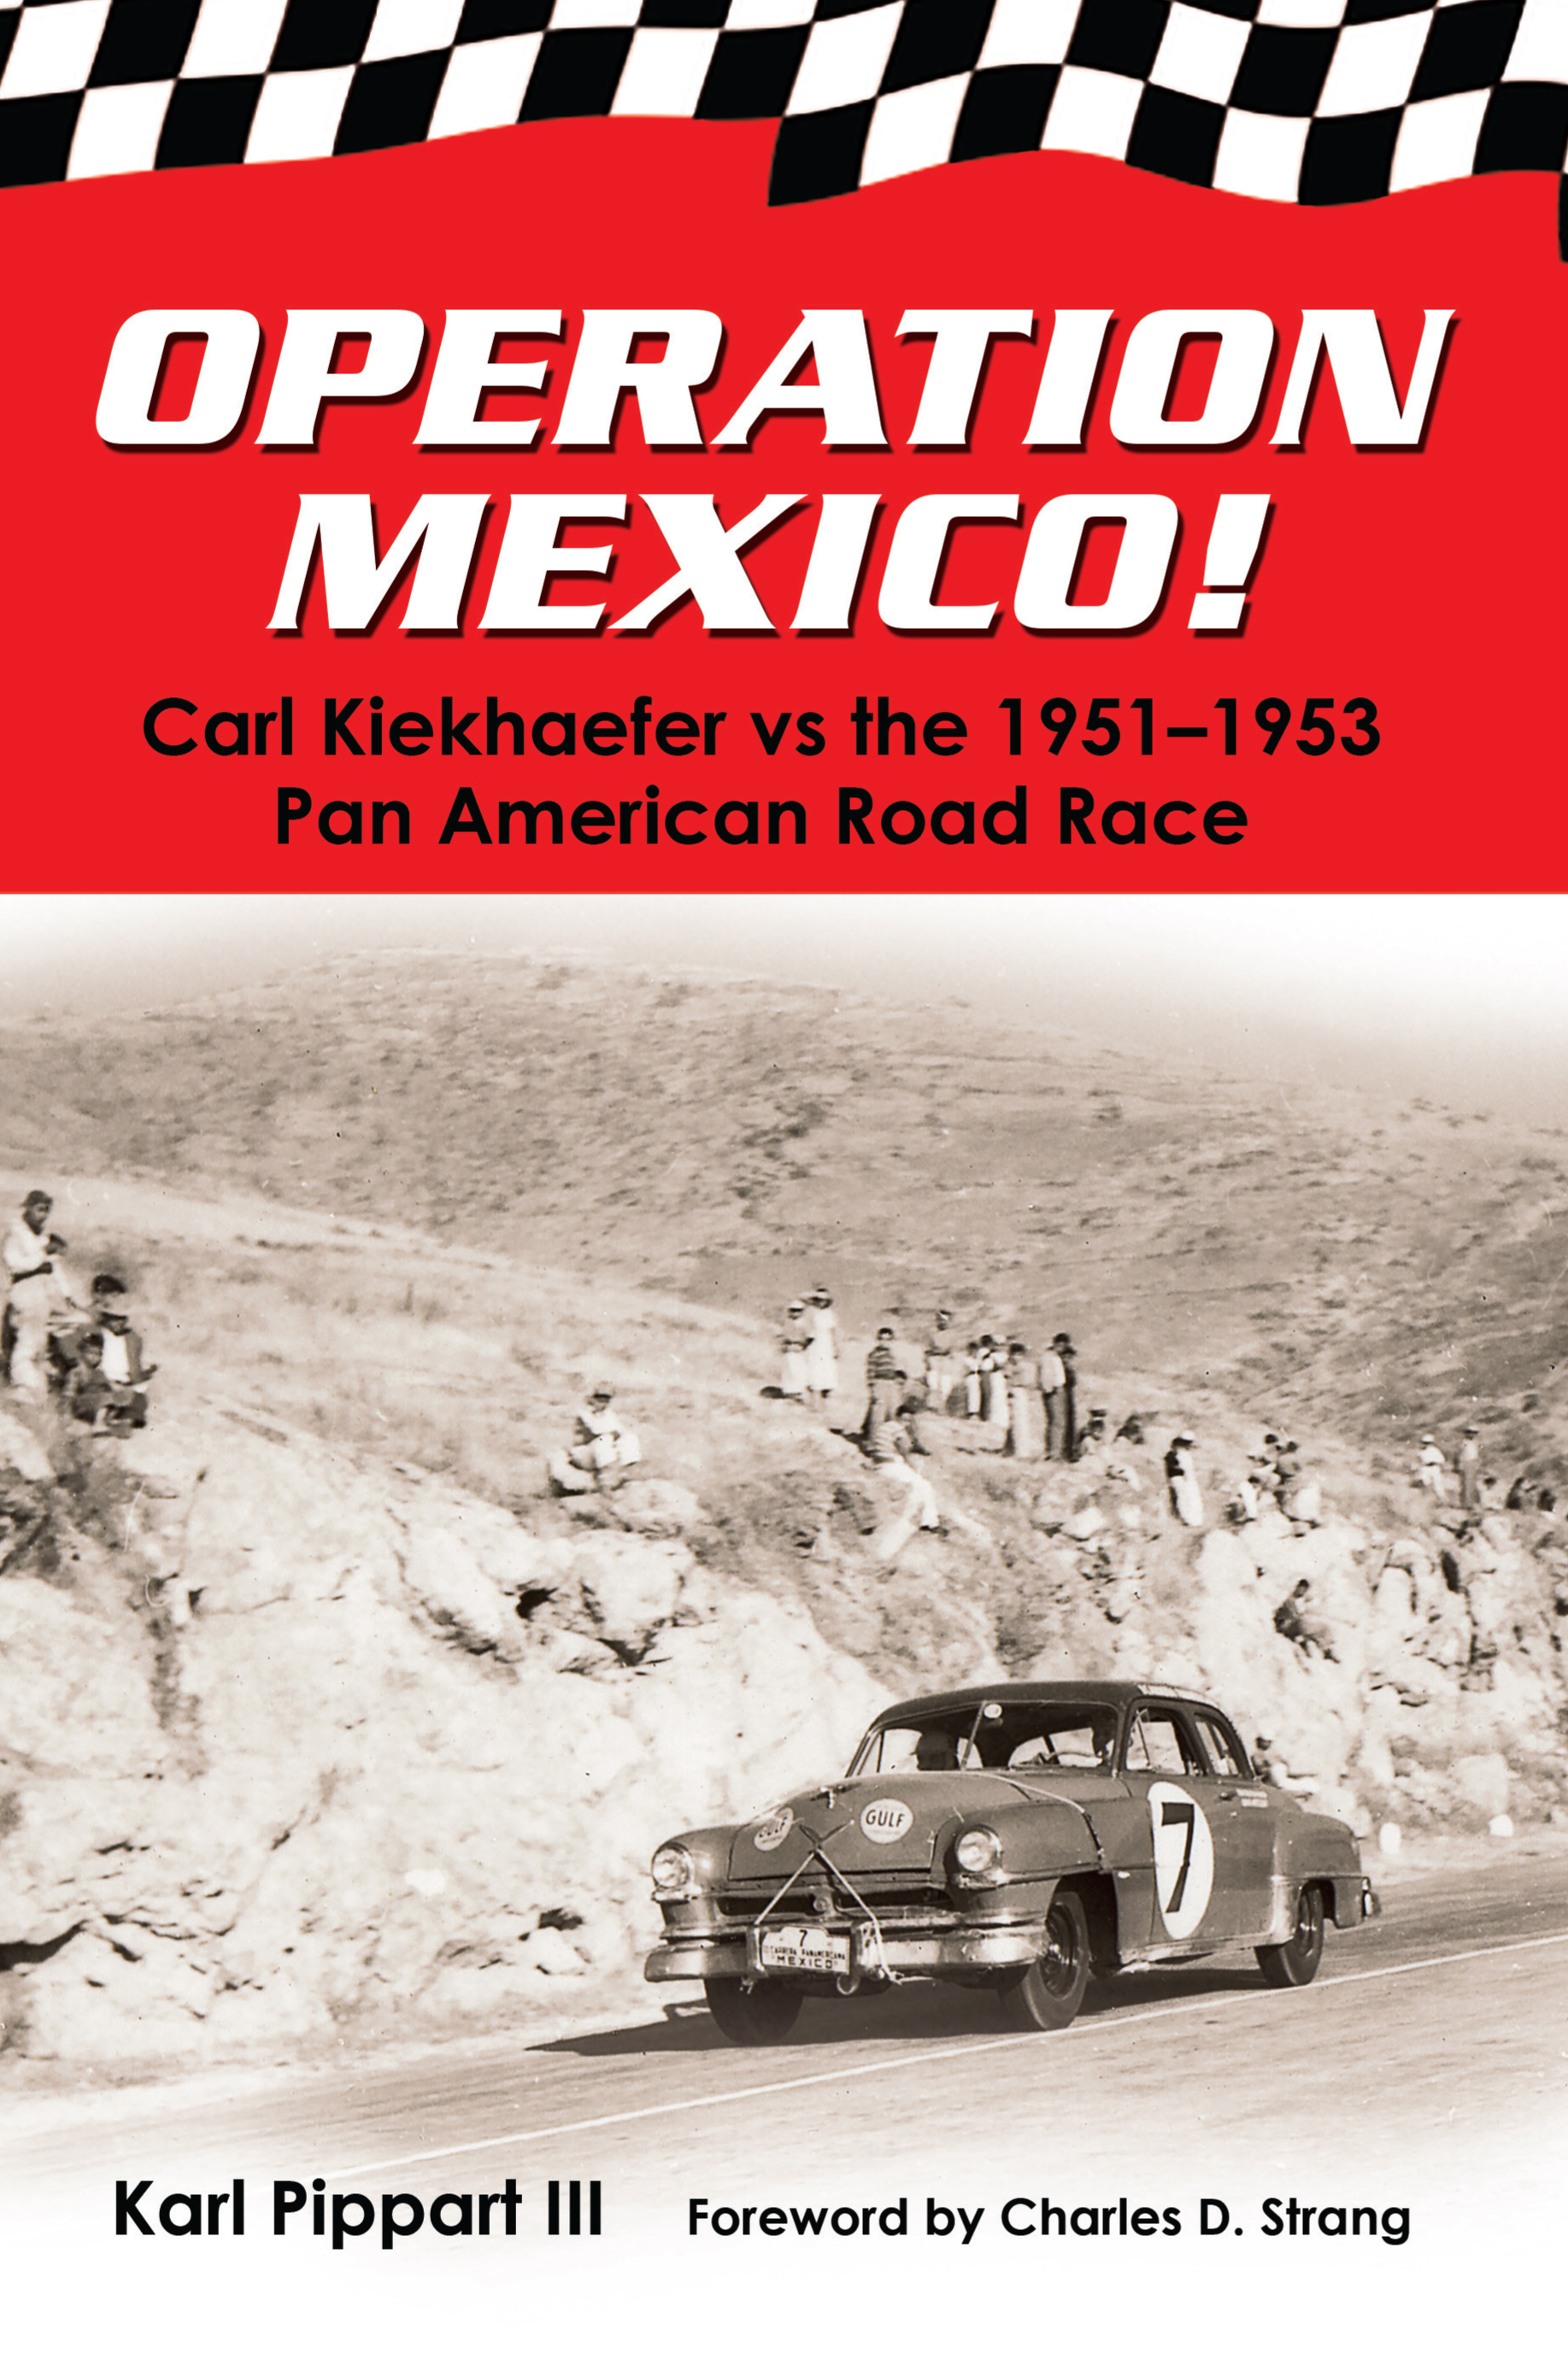 Operation Mexico! Karl Pippart III